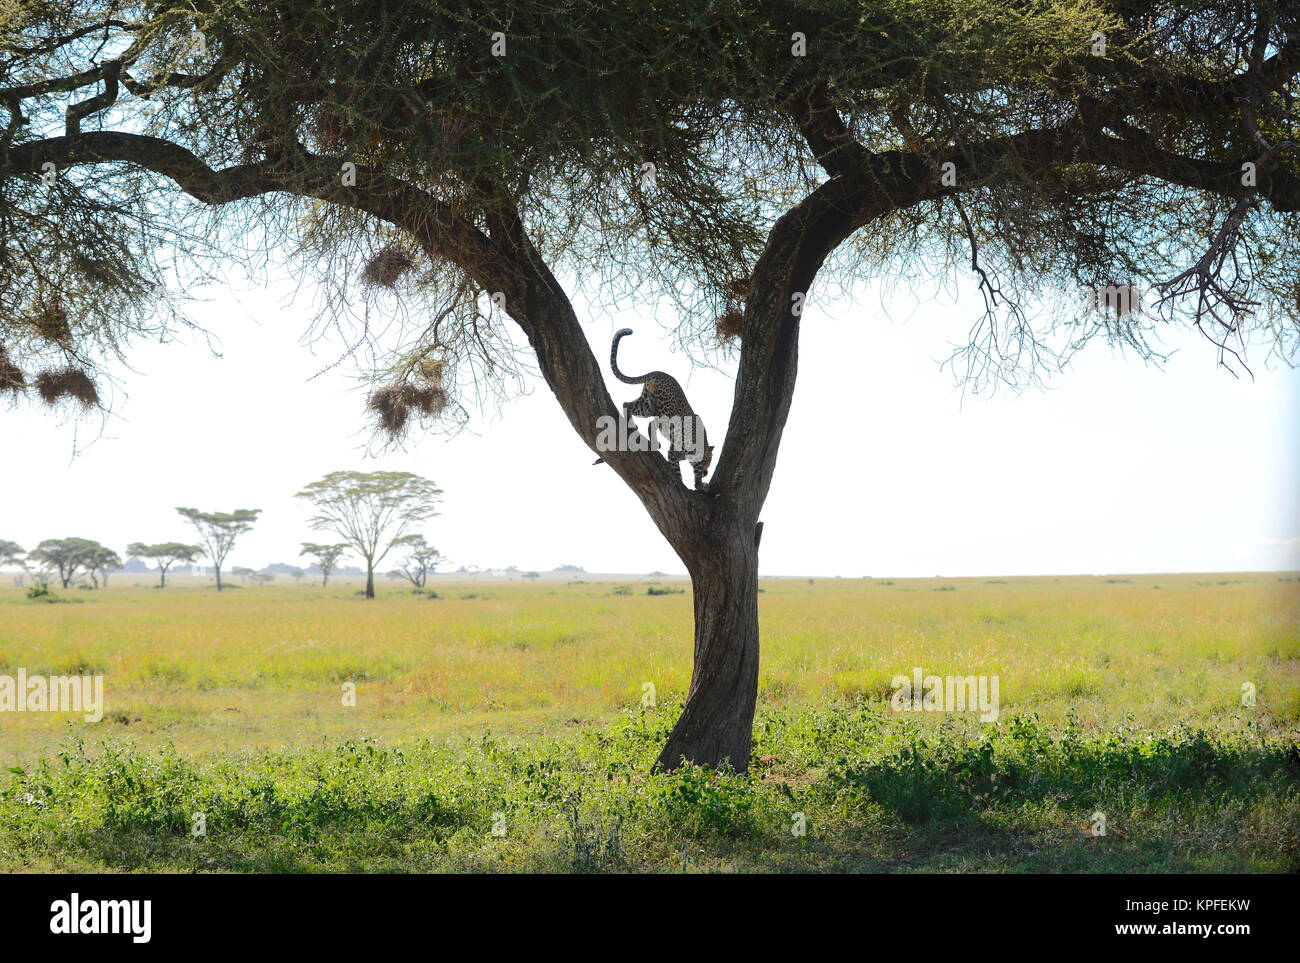 Wildlife sightseeing in one of the prime wildlife destinations on earht -- Serengeti, Tanzania. Leopard in fork - Stock Image